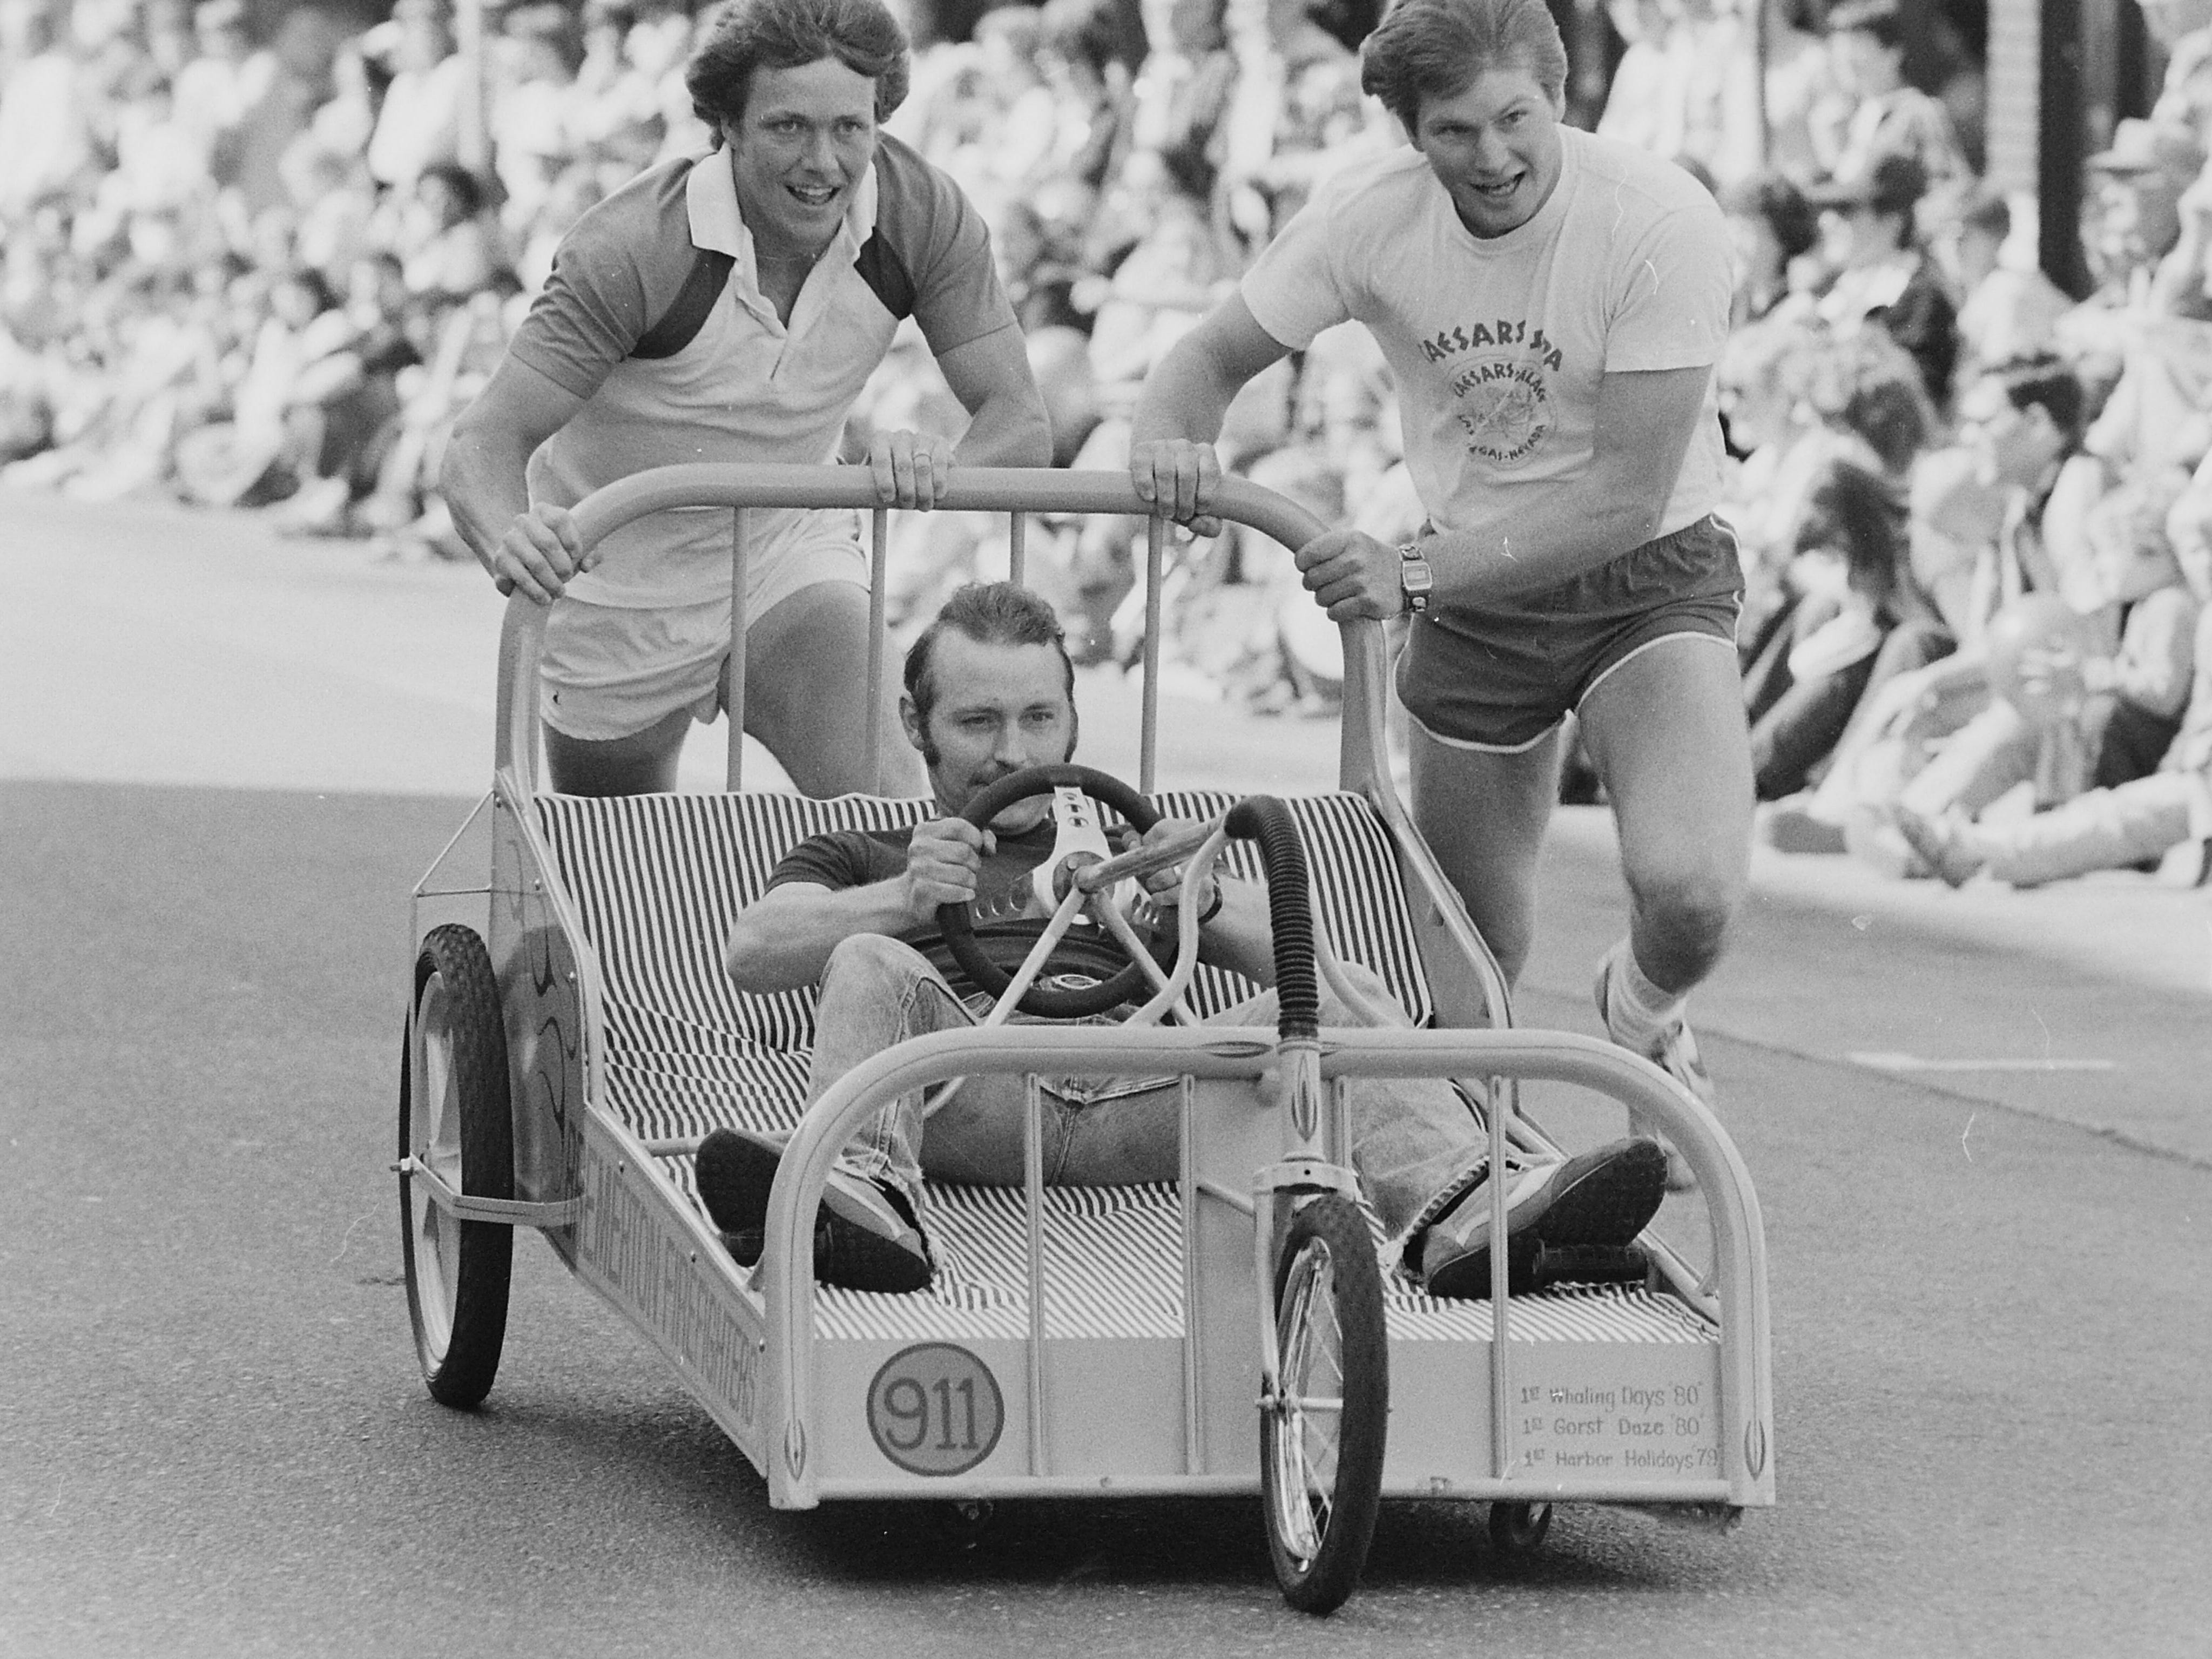 05/15/82Armed Forces Bed Race